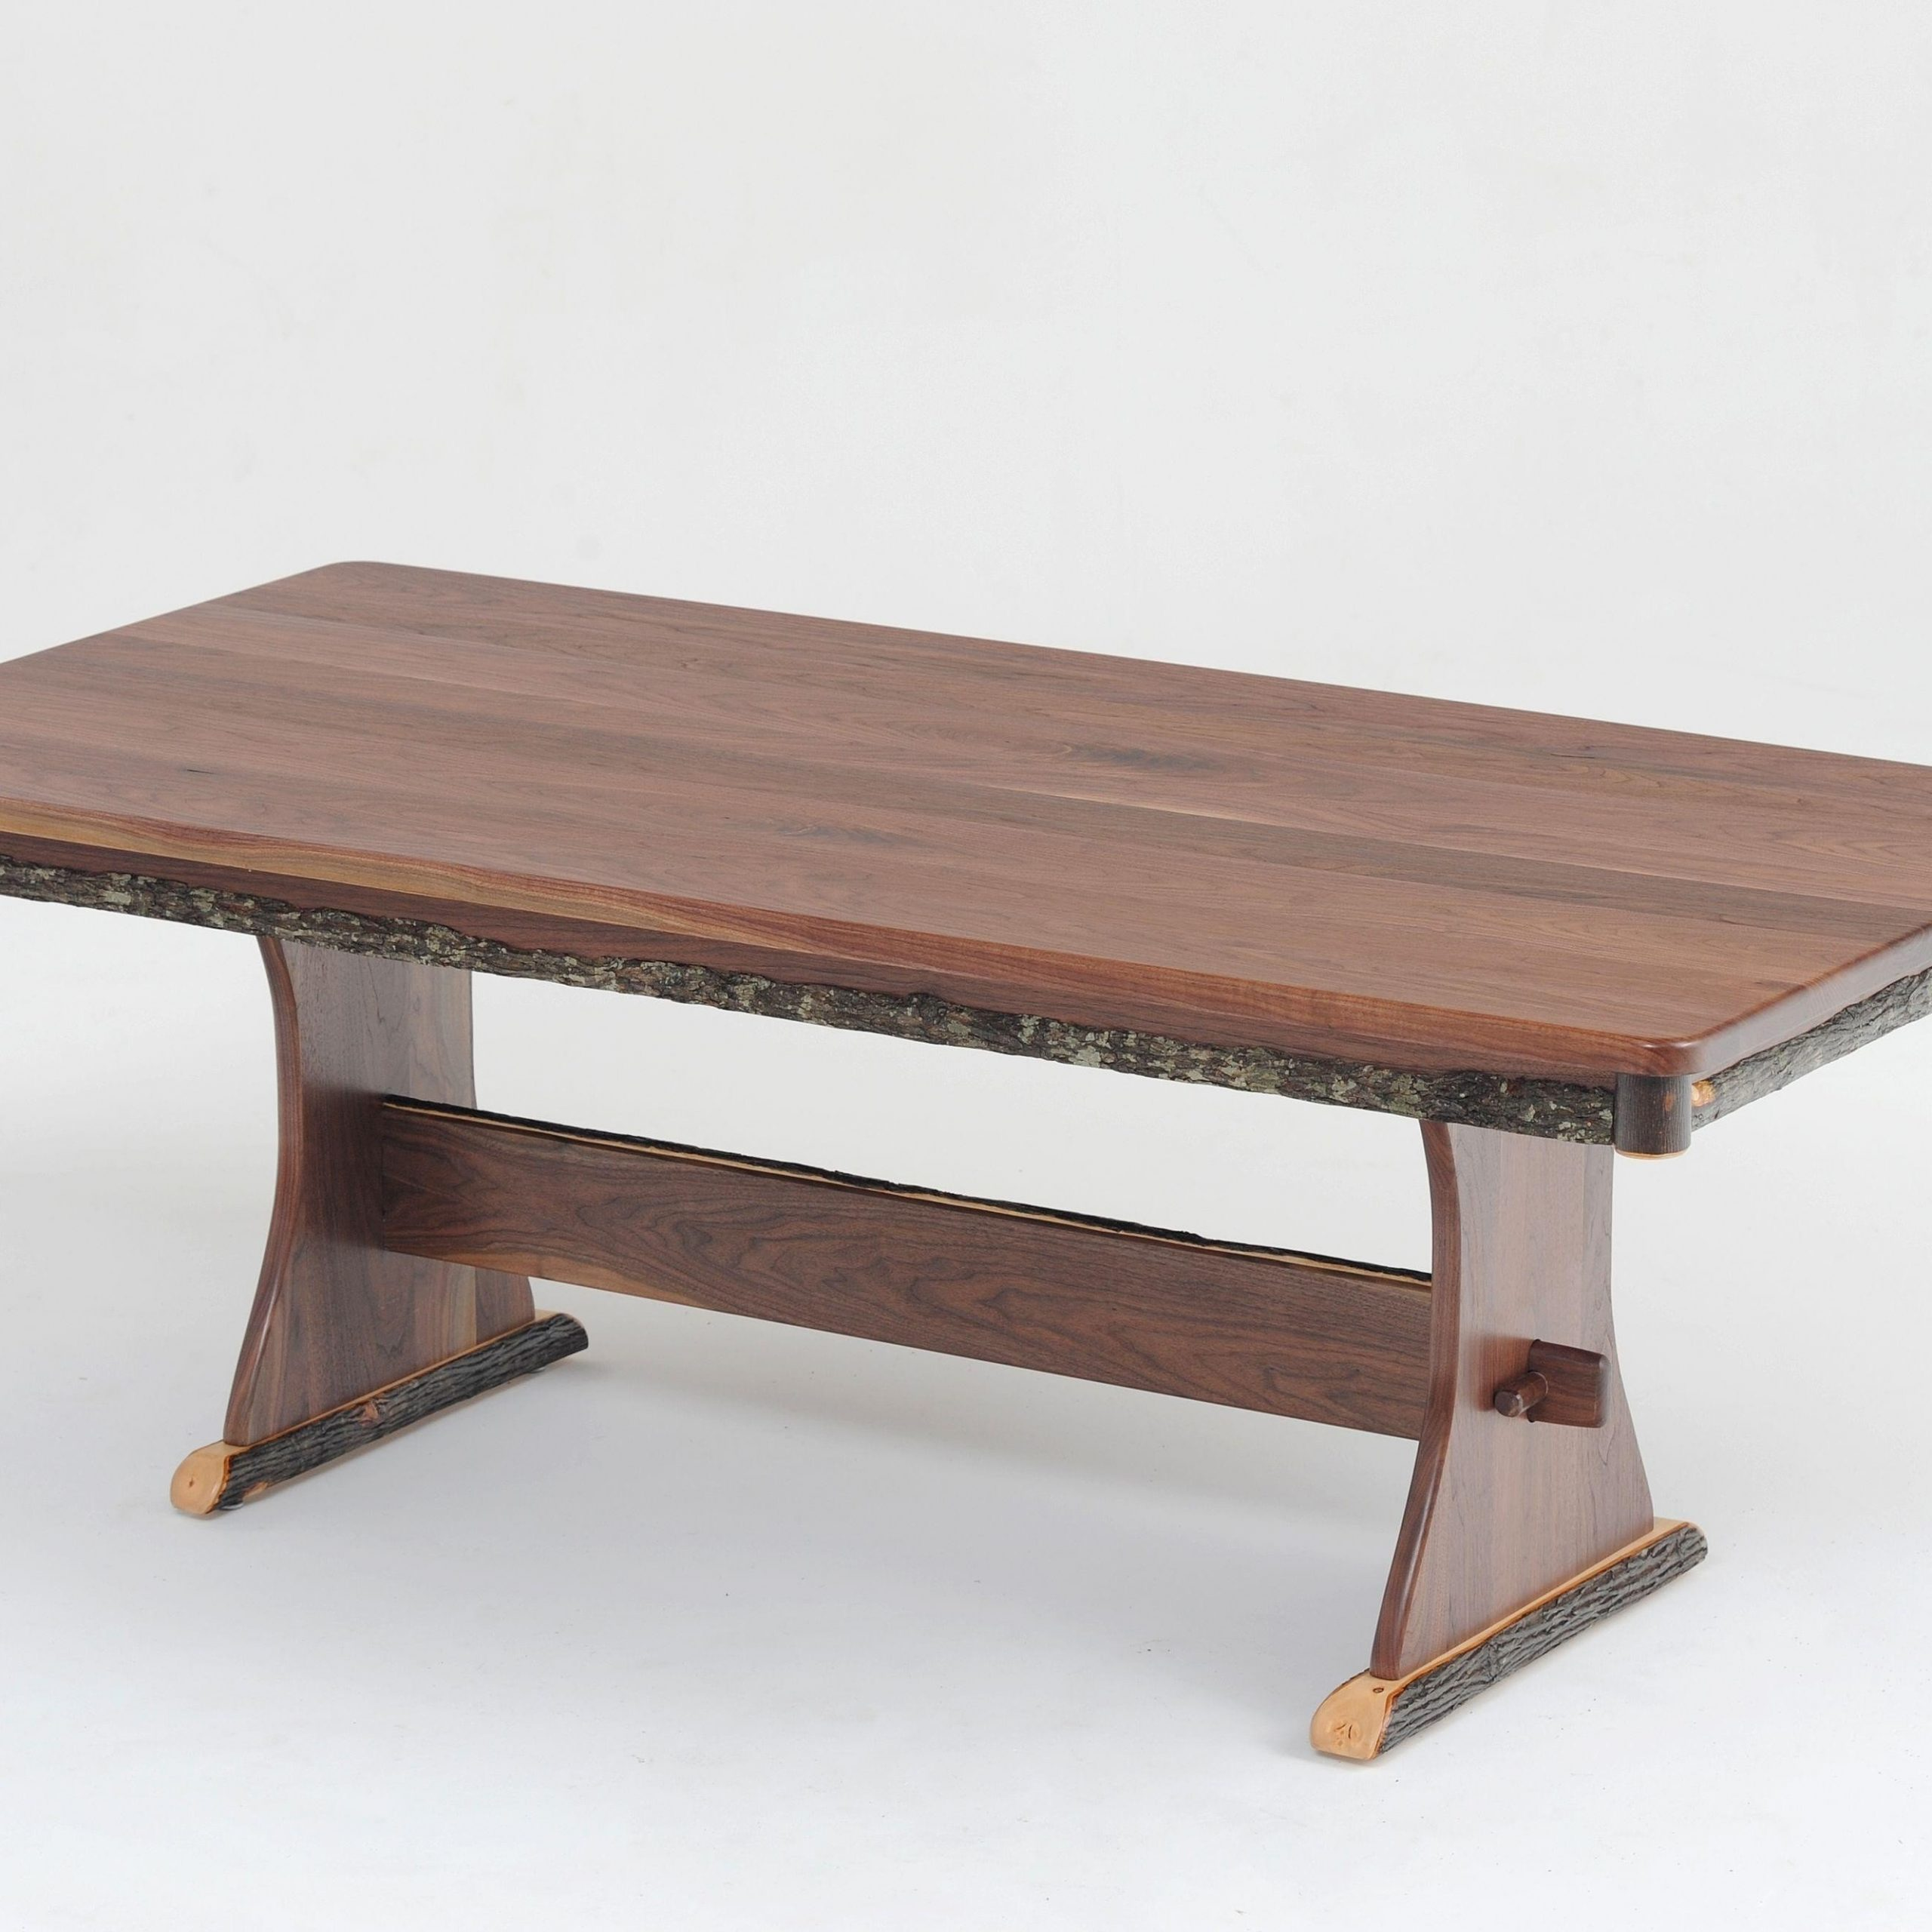 Rustic Trestle Dining Table, Log Furniture, Cabin Dinette Throughout Most Current Kara Trestle Dining Tables (View 3 of 15)